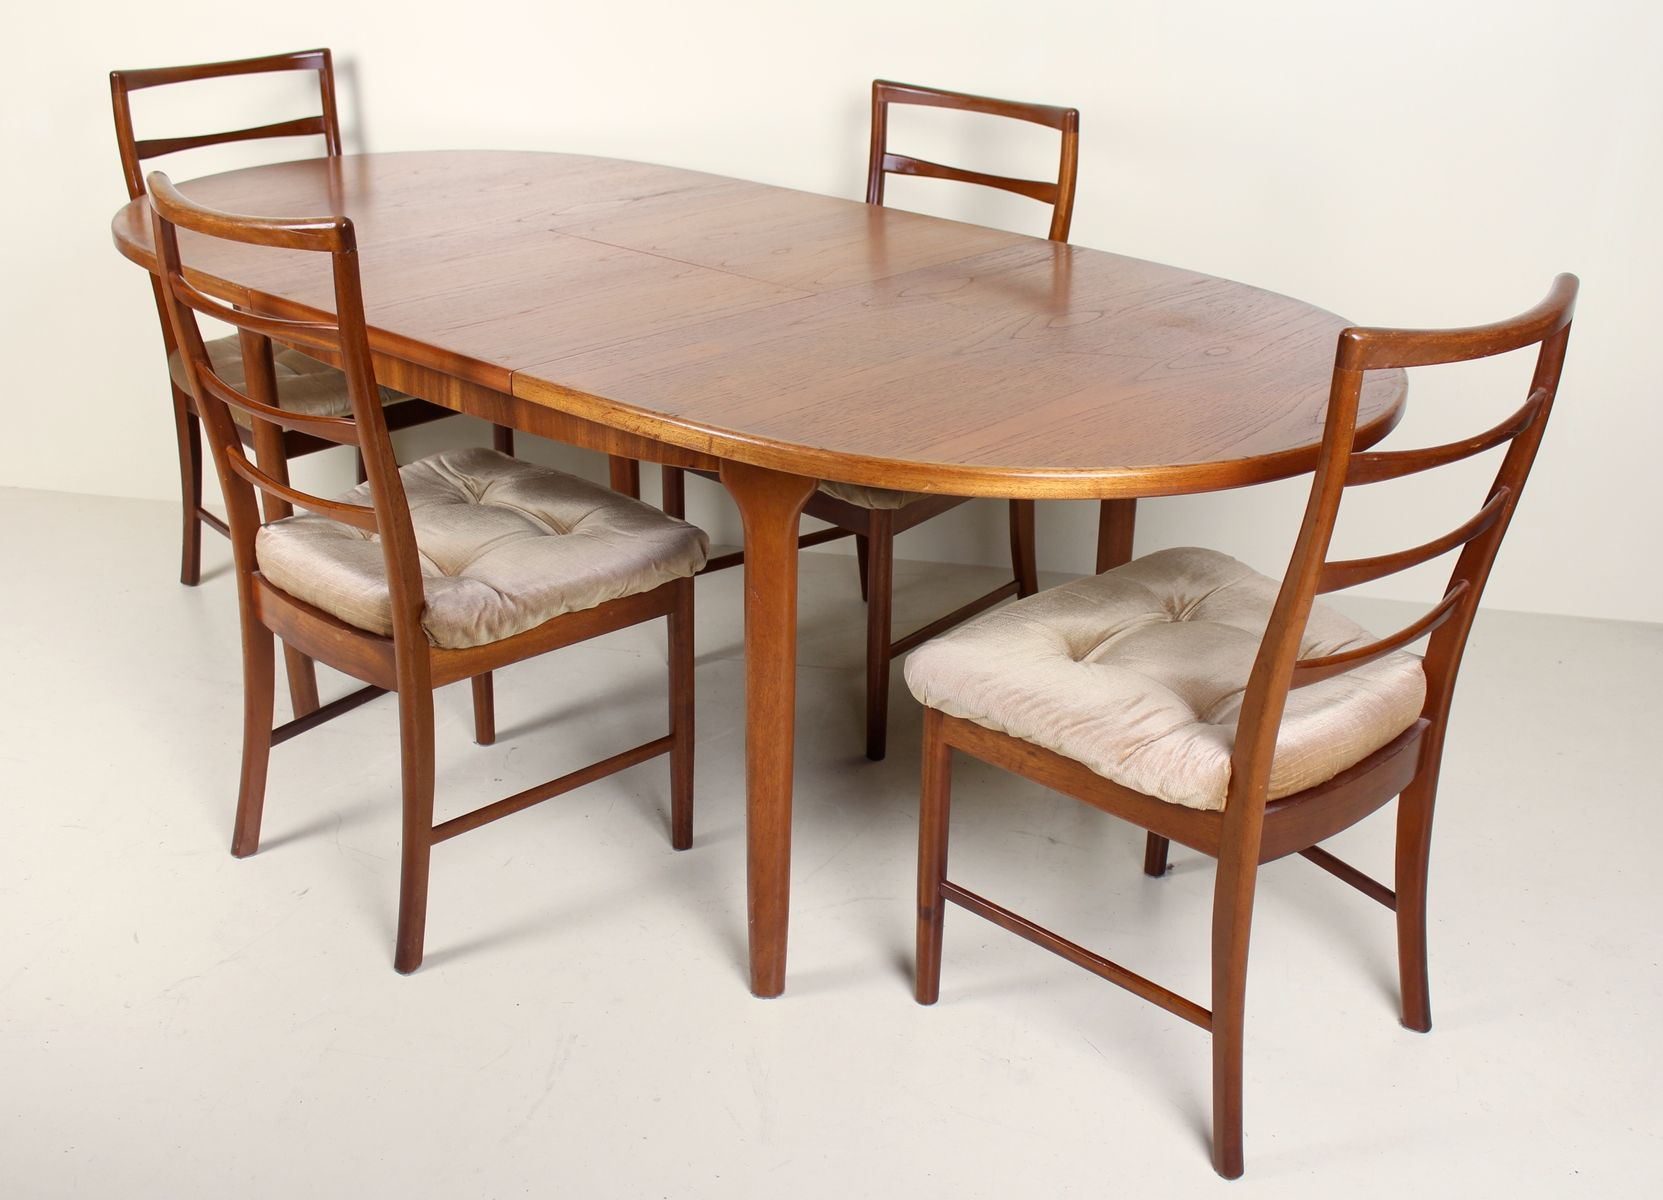 Vintage Dining Table Chairs From Mcintosh 1950s Bei Pamono Kaufen